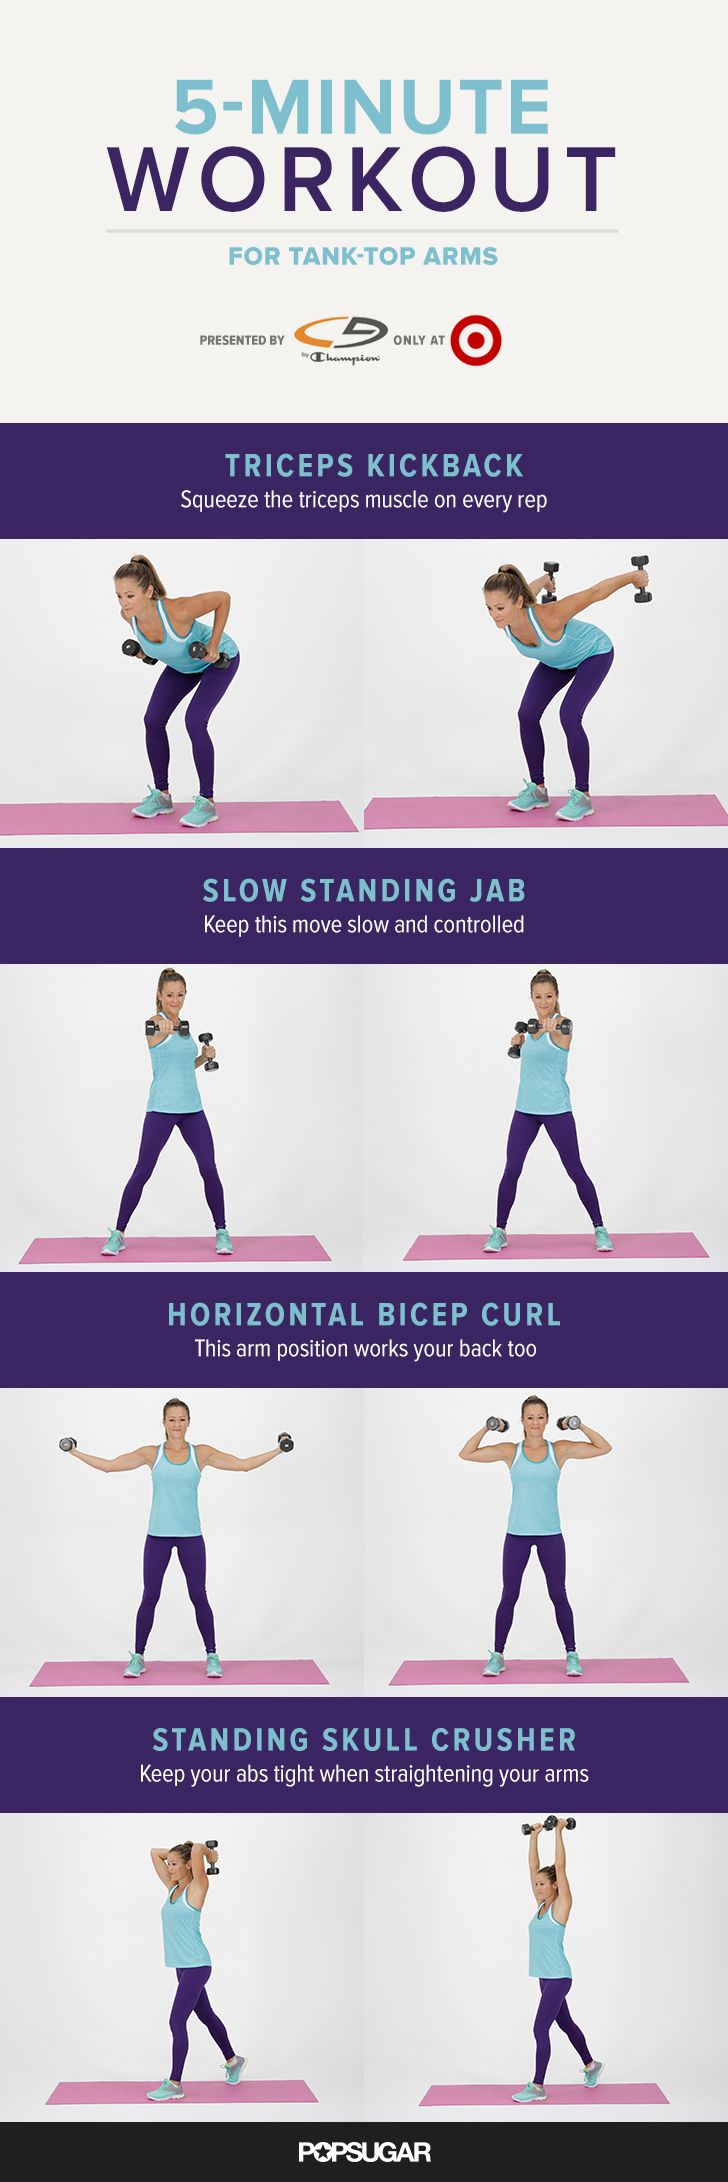 5-minute Arm Workout Routine For Women At Home or At The Gym. These moves will help strengthen and tone your arms.